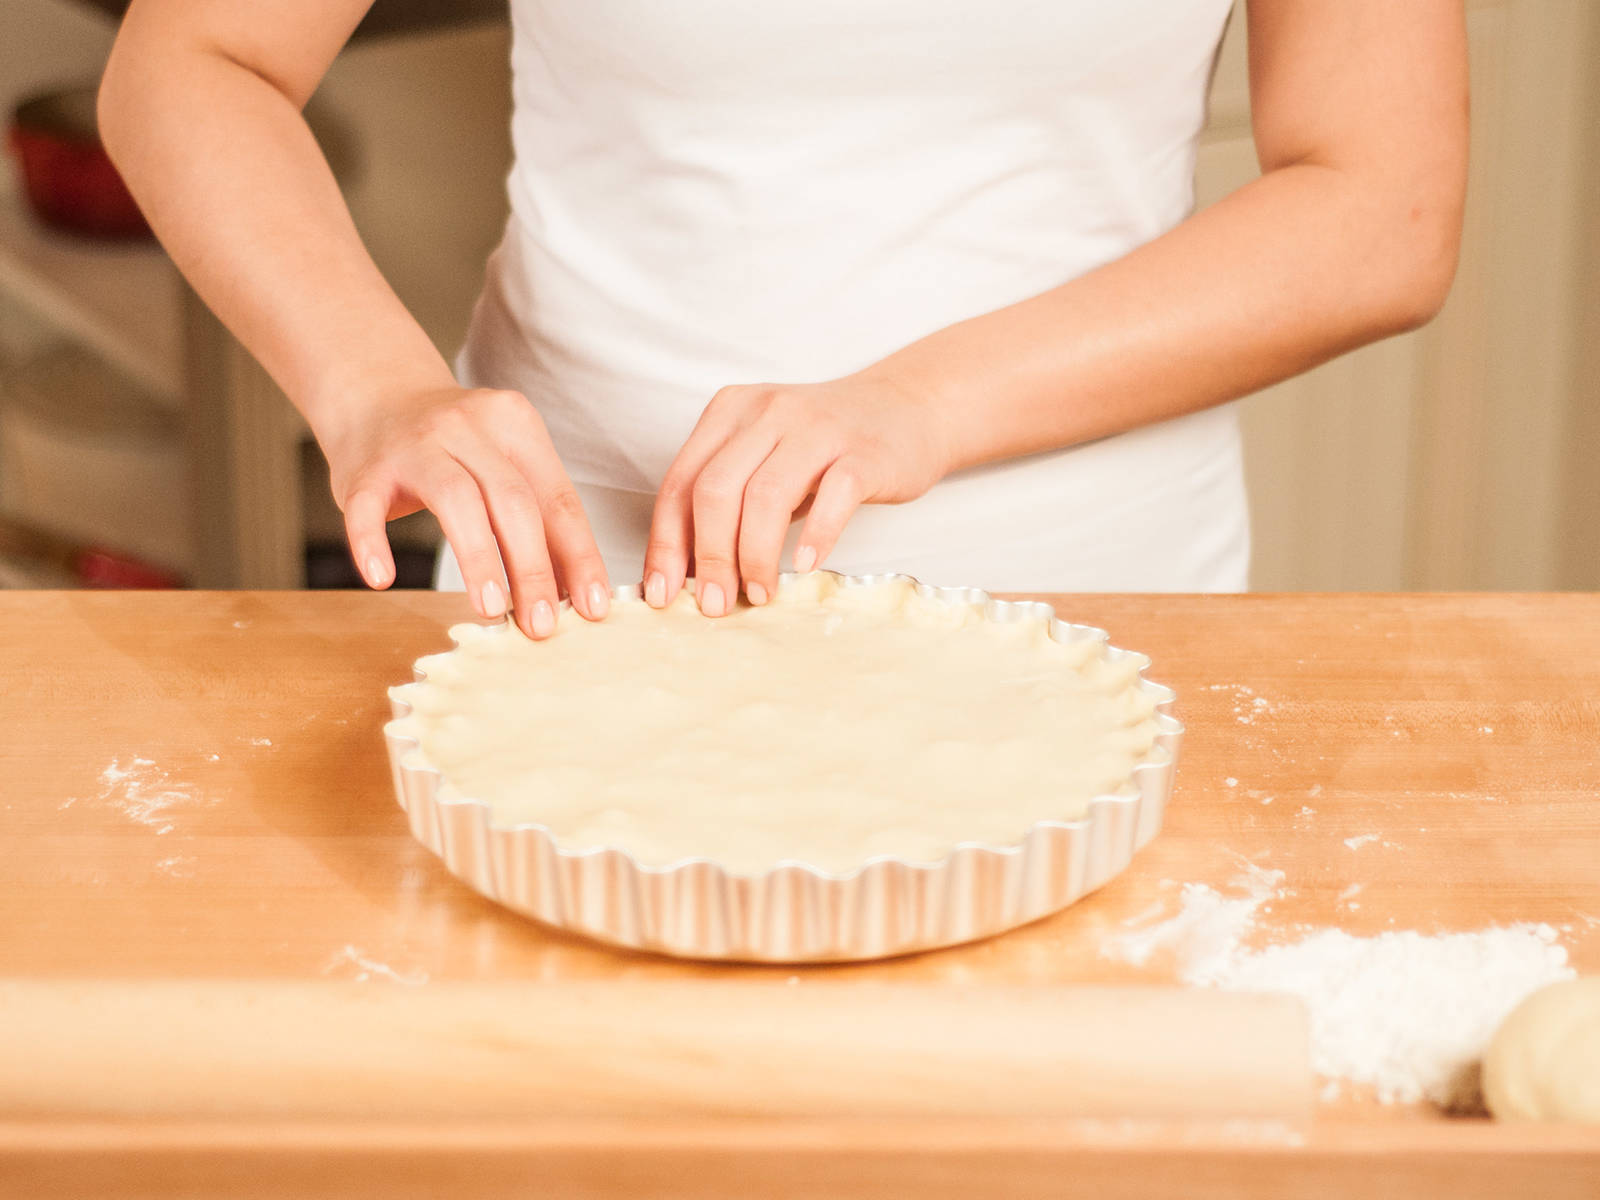 Cover the pie with the prepared top crust. Trim the excess leaving an overhang of approx. 1cm. Crimp overhang to seal the pie.